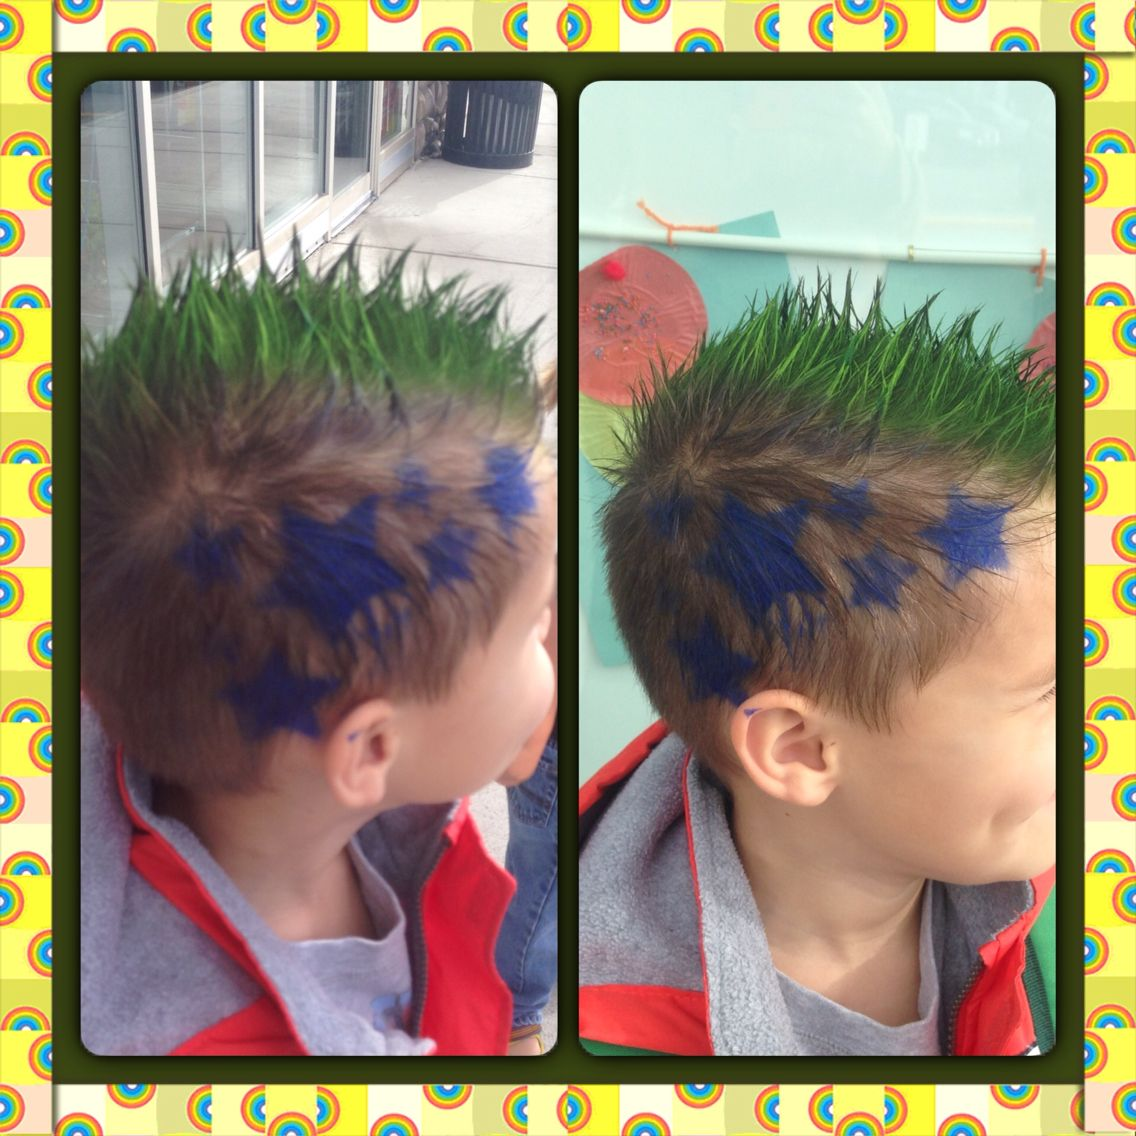 crazy hair day preschool school hair color boy | preschool